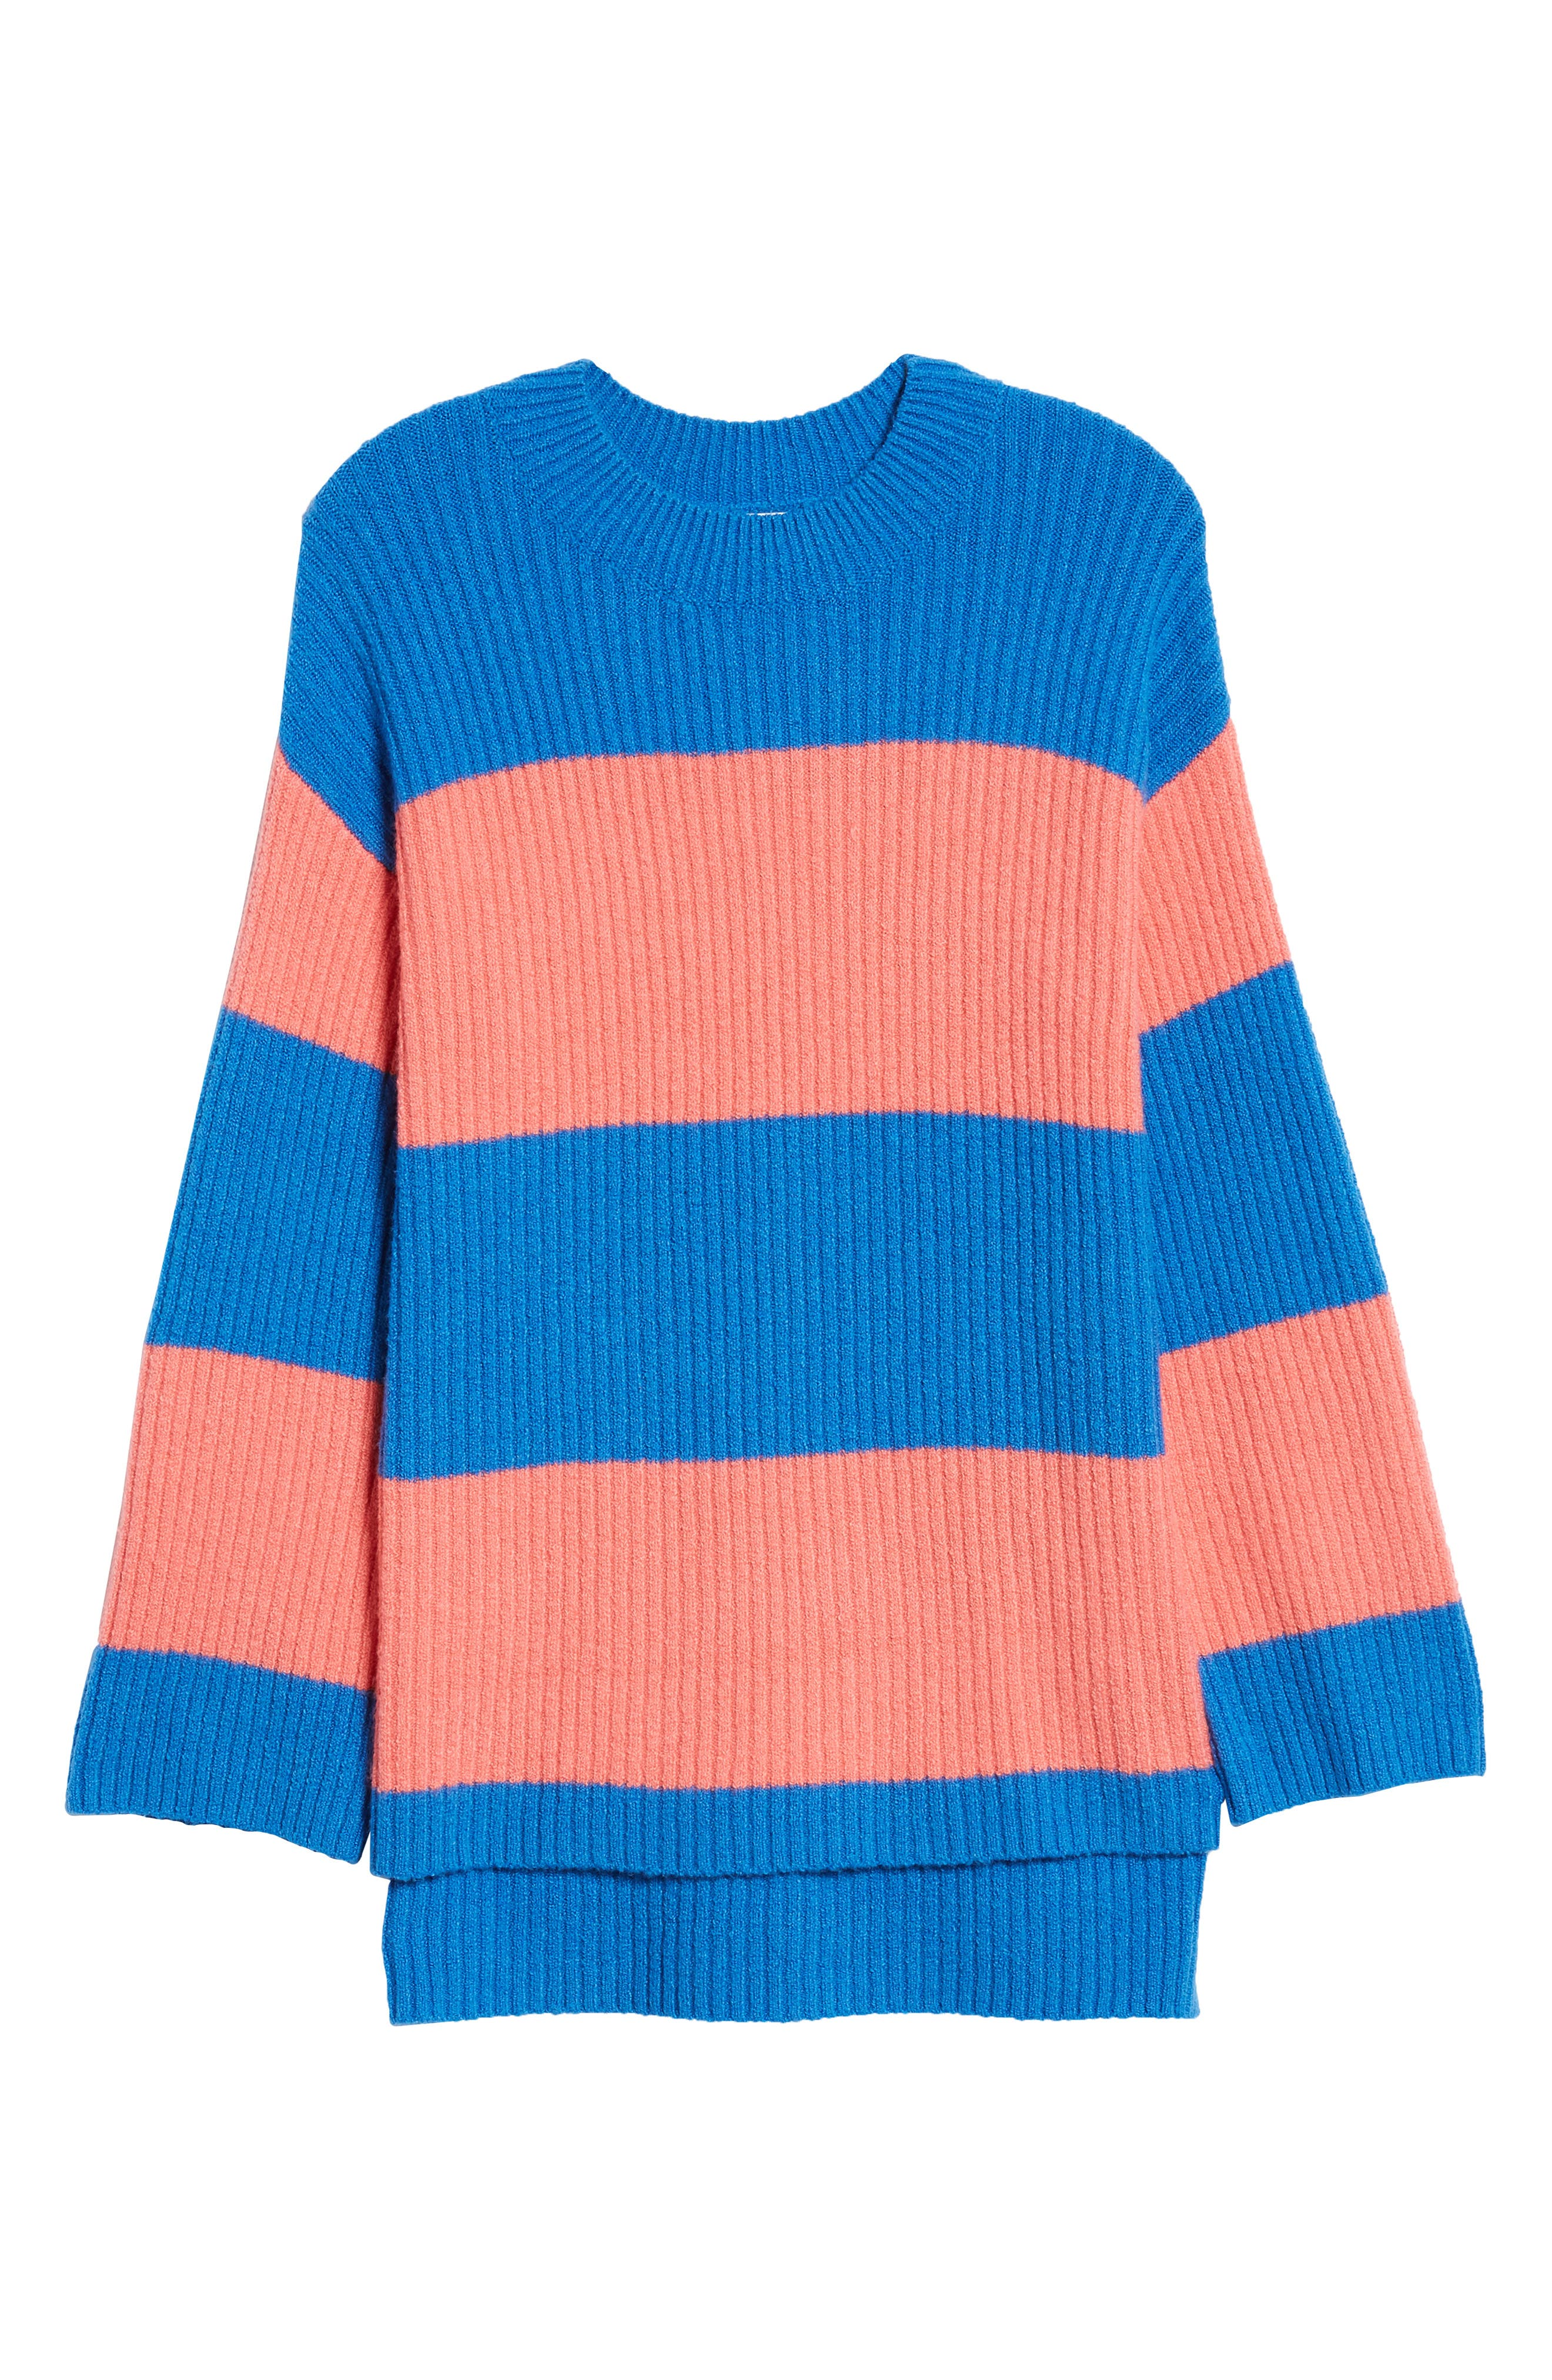 Rugby Stripe Sweater,                             Alternate thumbnail 8, color,                             BLUE BOAT COURTNEY STRIPE